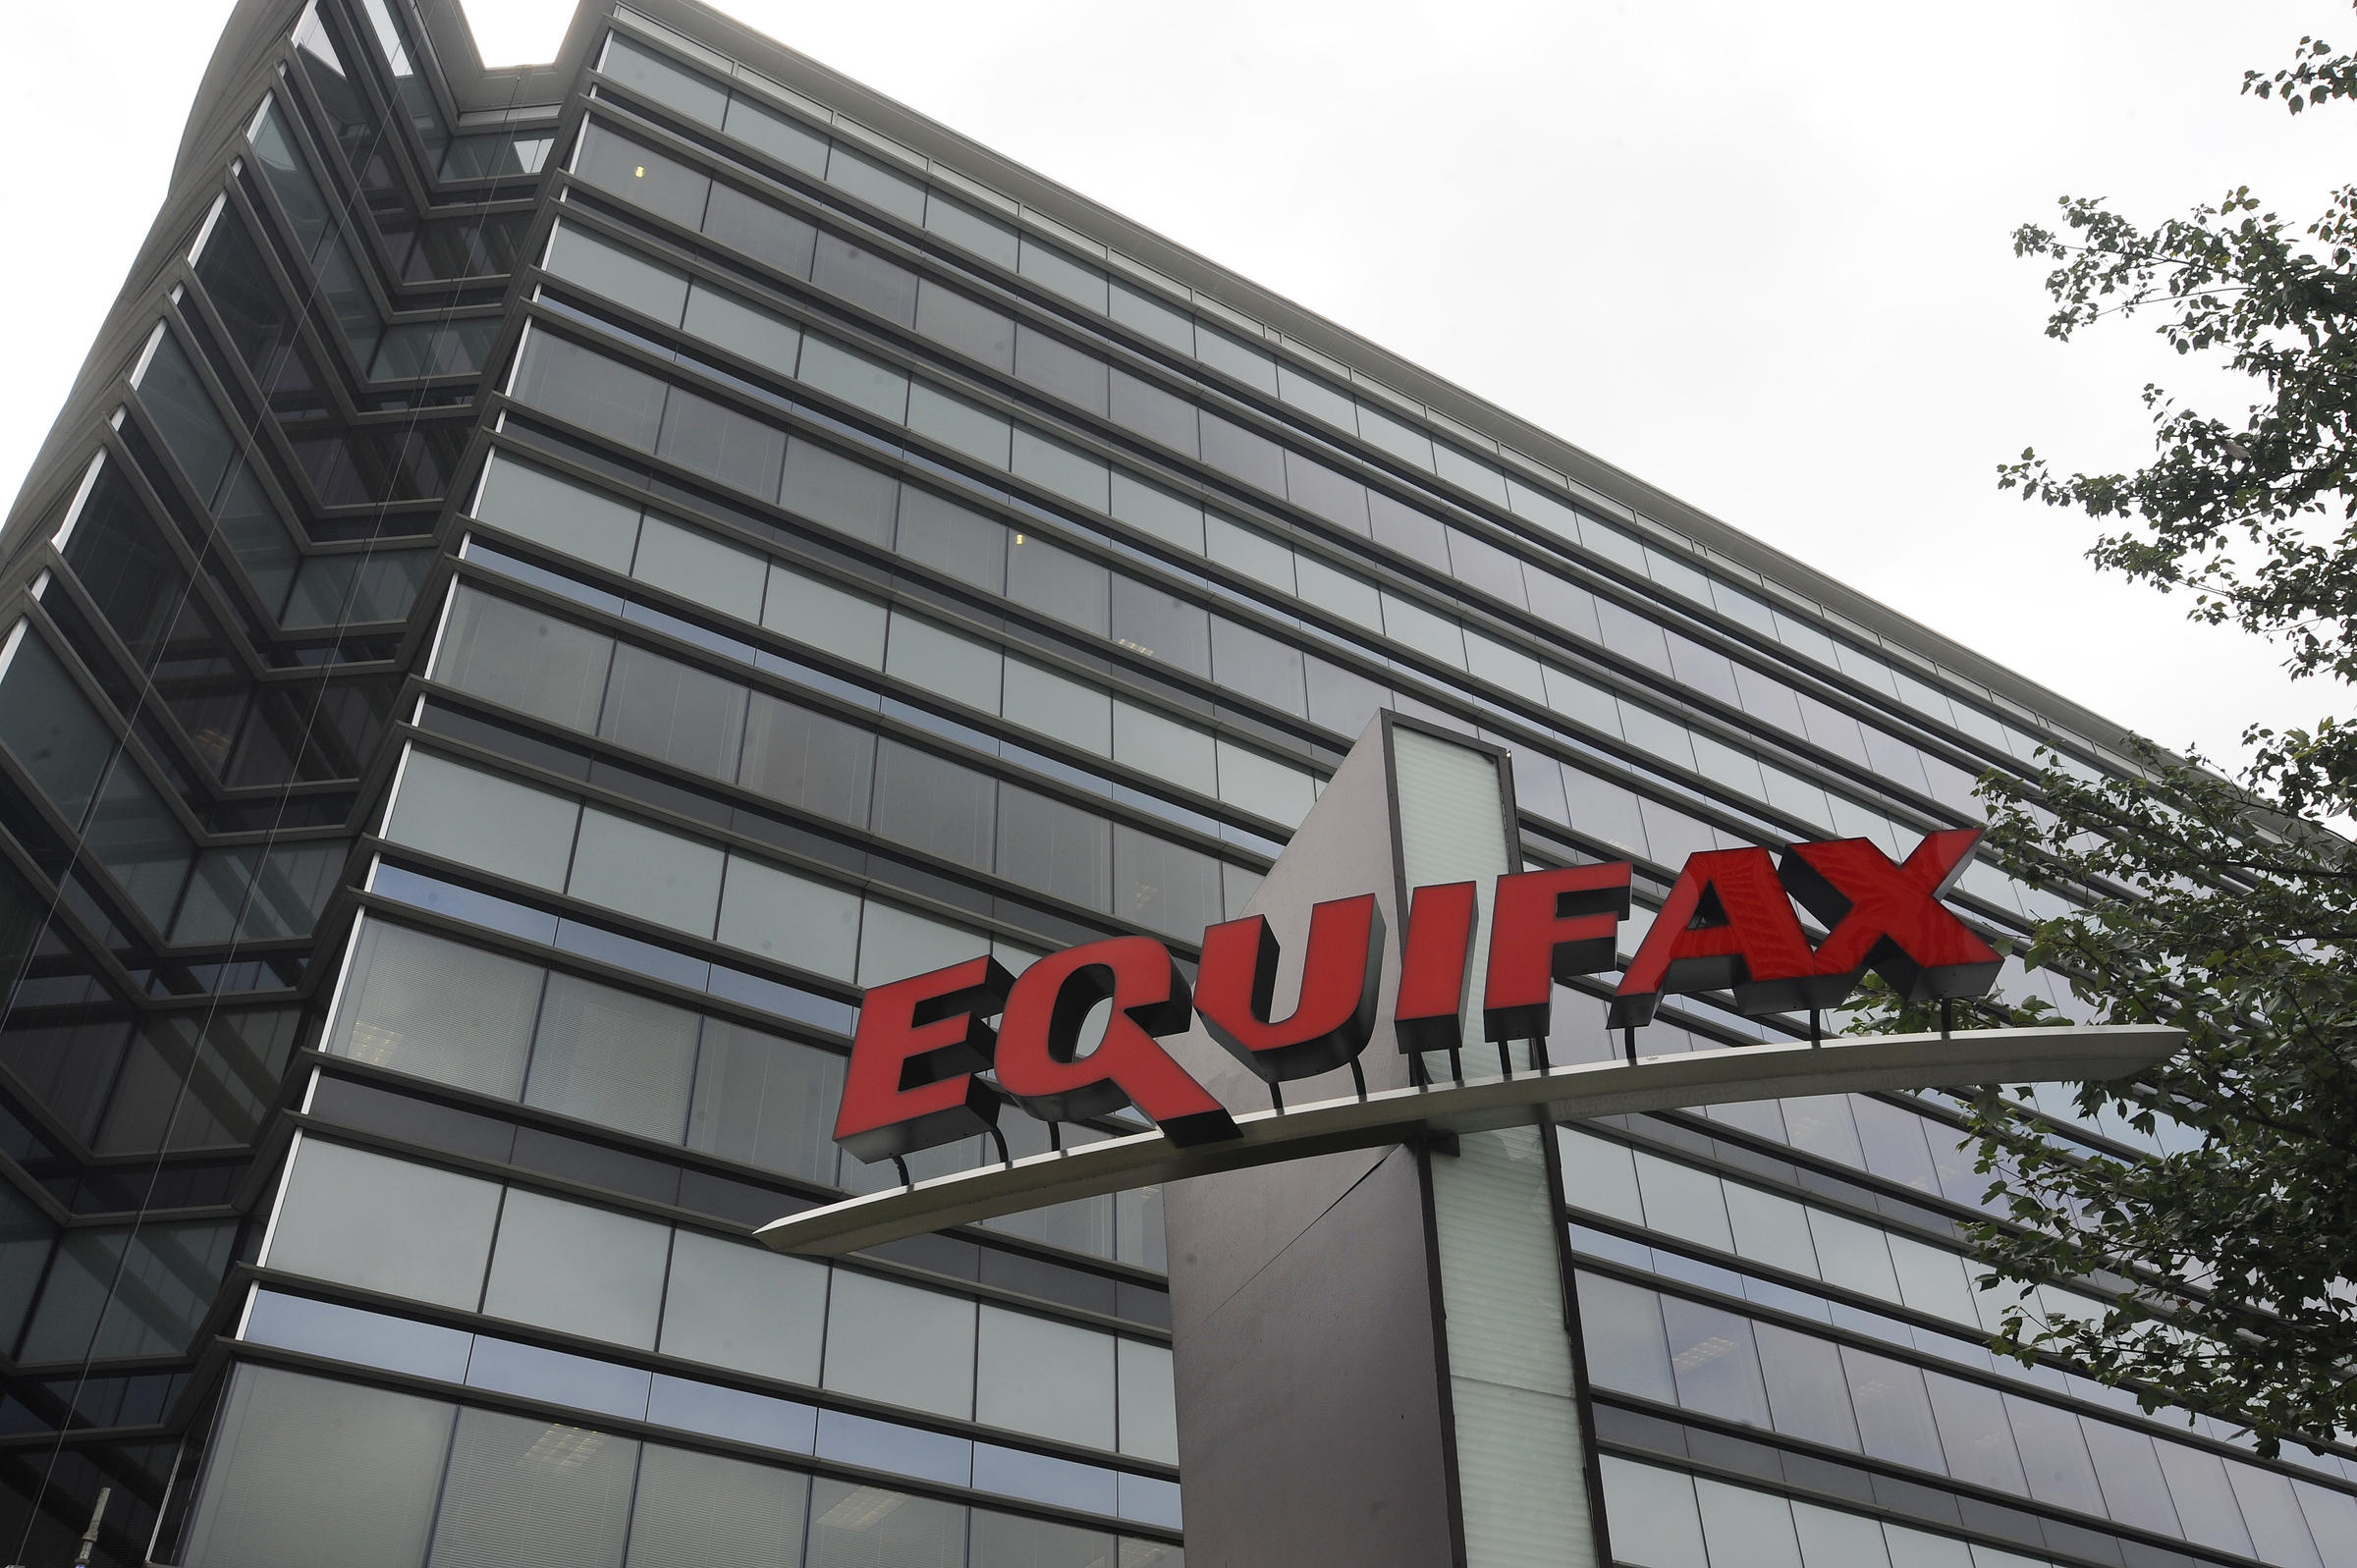 Equifax breach compromises personal information for 143 million Americans